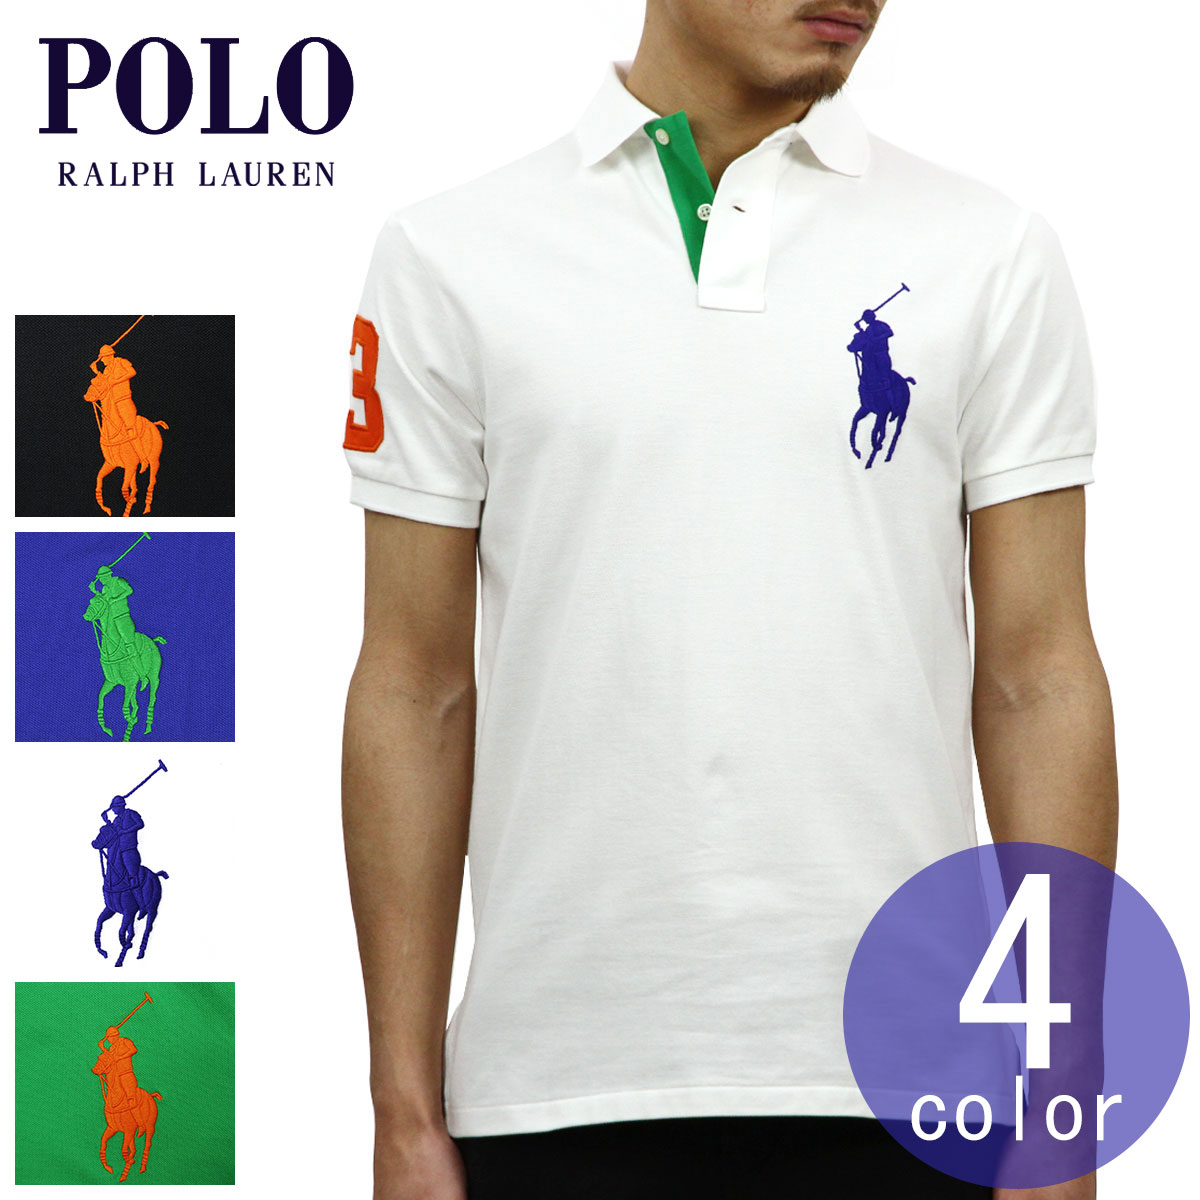 4dedb6e7 Polo Ralph Lauren POLO RALPH LAUREN regular article men big pony custom  fitting short sleeves polo ...